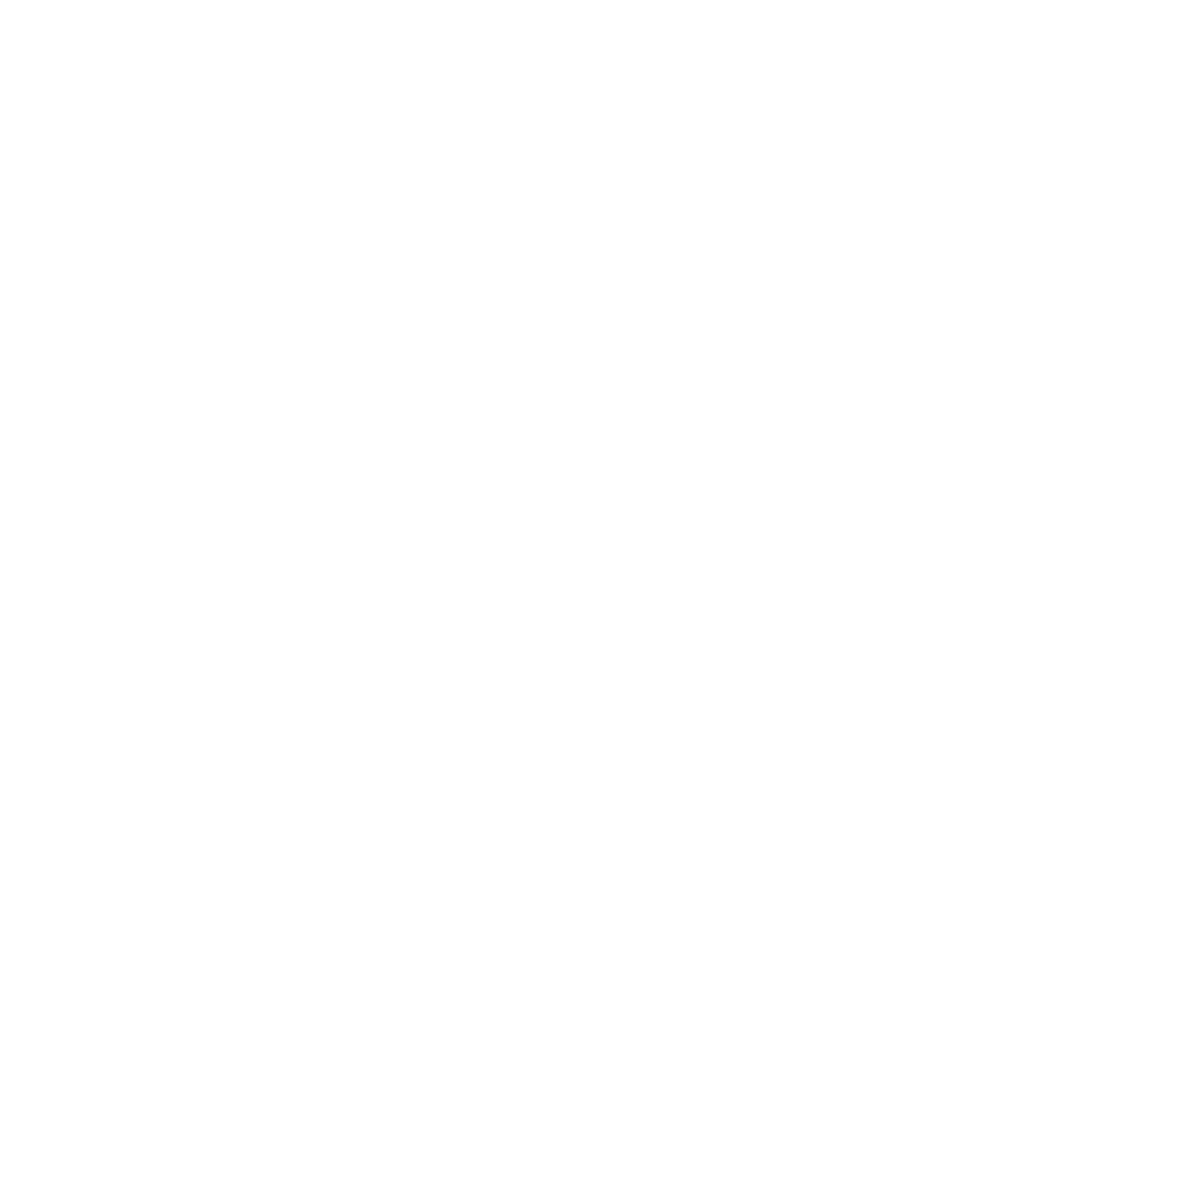 Coincierge Club Roadmap Blockchain Events